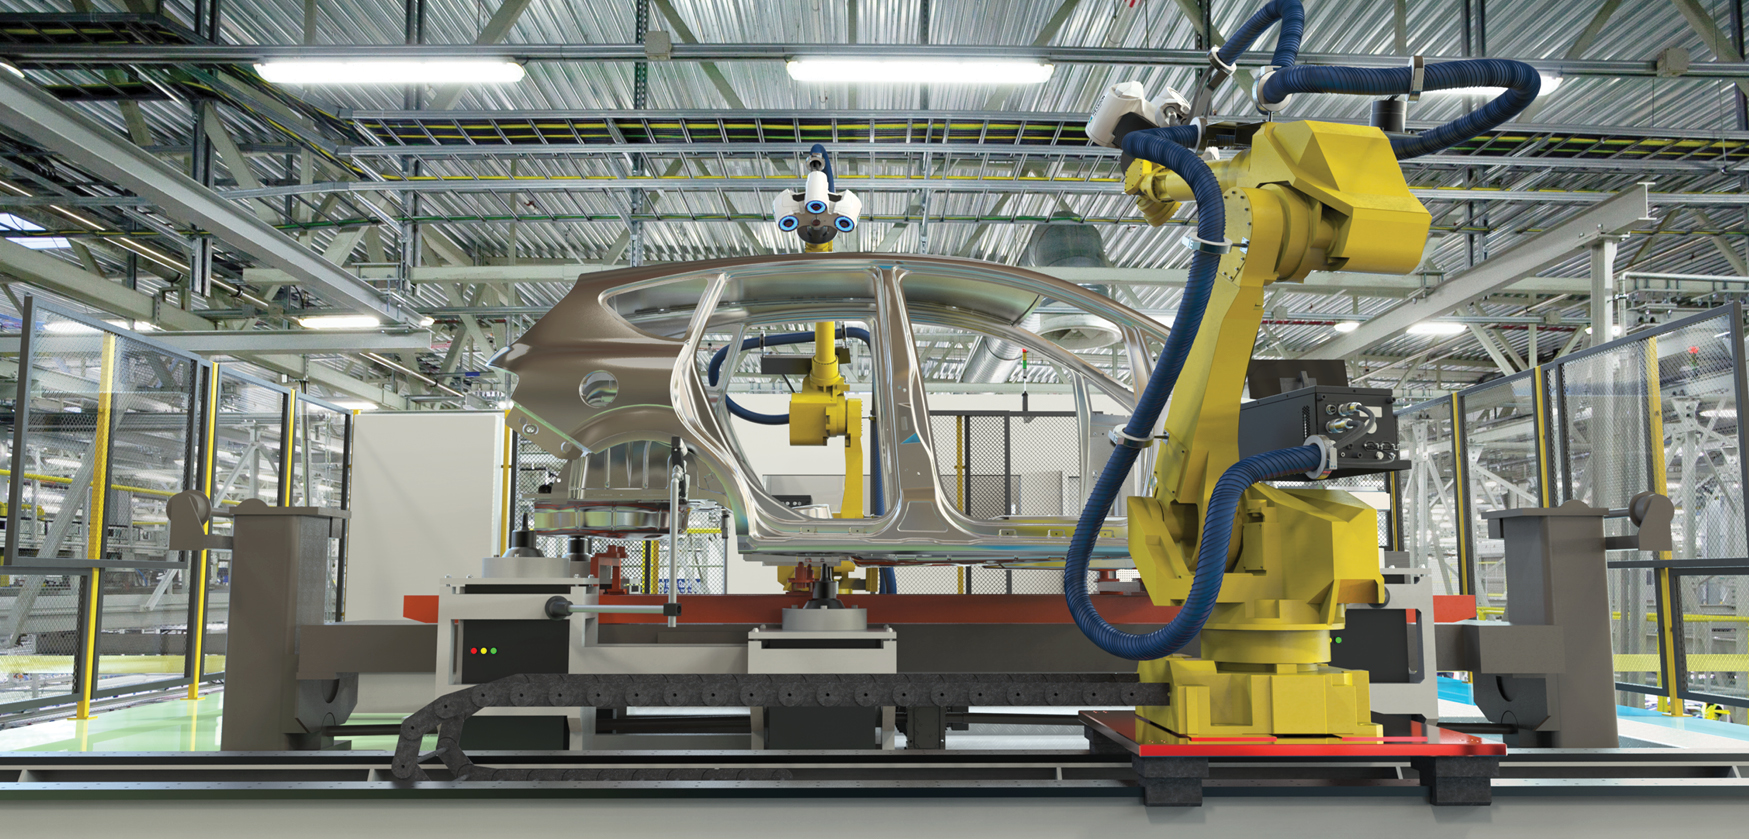 improving car body production at psa The automated ur robot system also aids producibility through a 10 percent improvement in geometric dimensioning and tolerance (gd&t) and has an excellent operational yield, with no failures reported in the first year with over 200,000 cars produced @groupepsa - europe's 2nd largest car maker,.